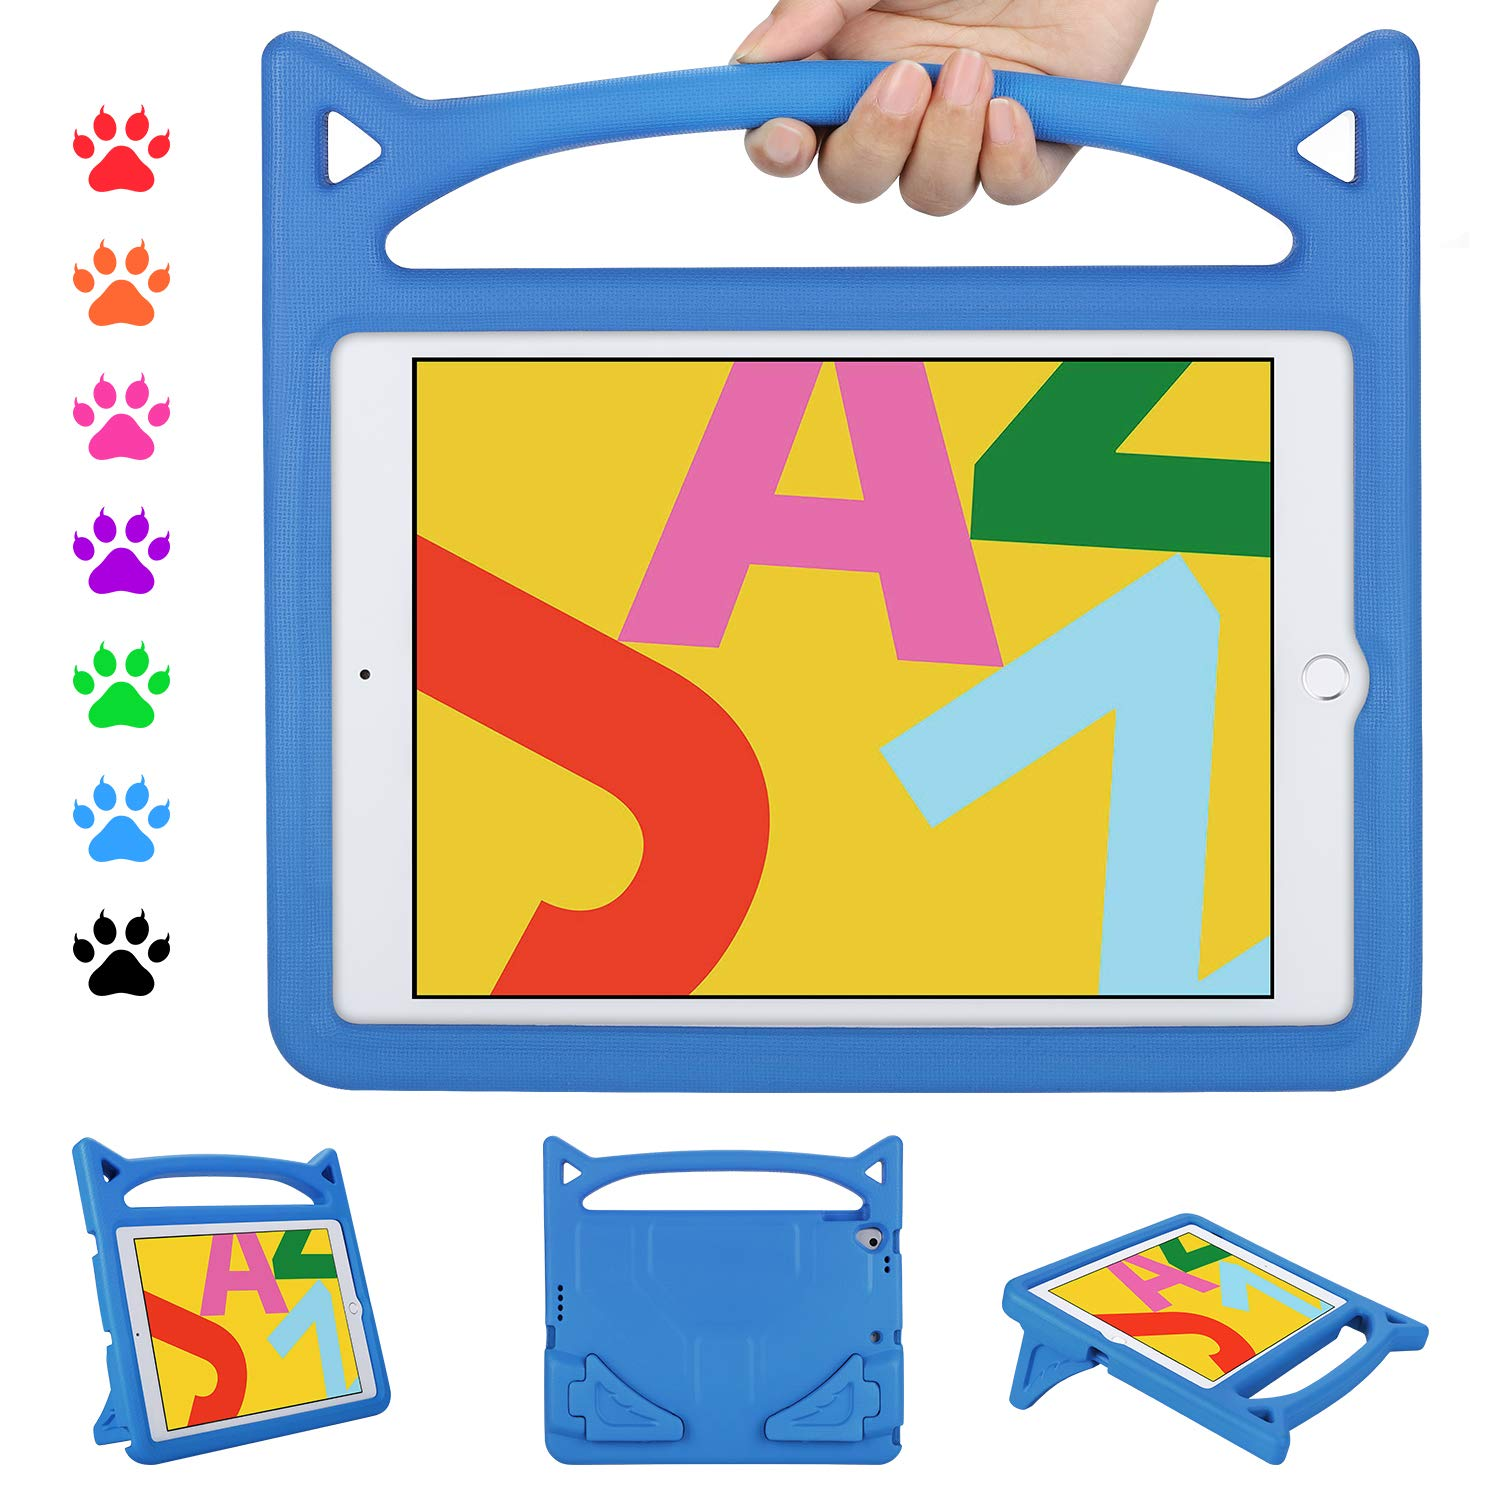 Kids Case for ipad 10.2 7th Generation, 10.2 inch 2019 Kids Case, Ubearkk Shockproof Light Weight Handle Stand Kids Friendly Case for ipad Pro 10.5 inch/ipad Air 3 10.5 inch (Blue)